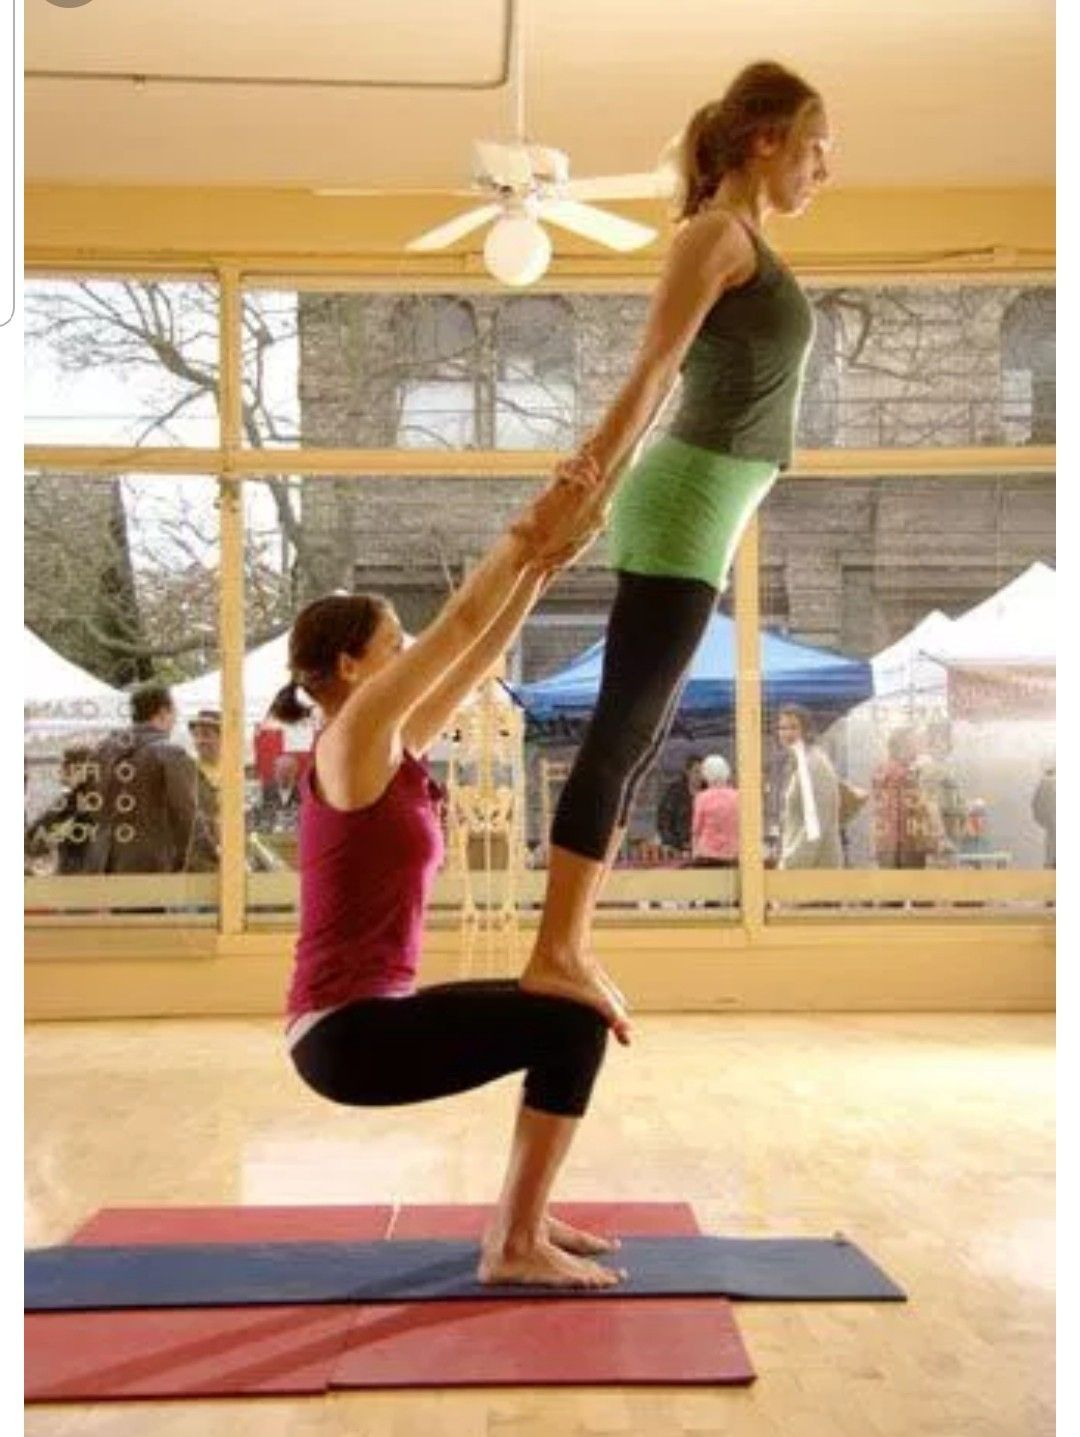 44 Awesome 2 Person Yoga Poses Yoga Poses For Two Cool Yoga Poses Partner Yoga Poses